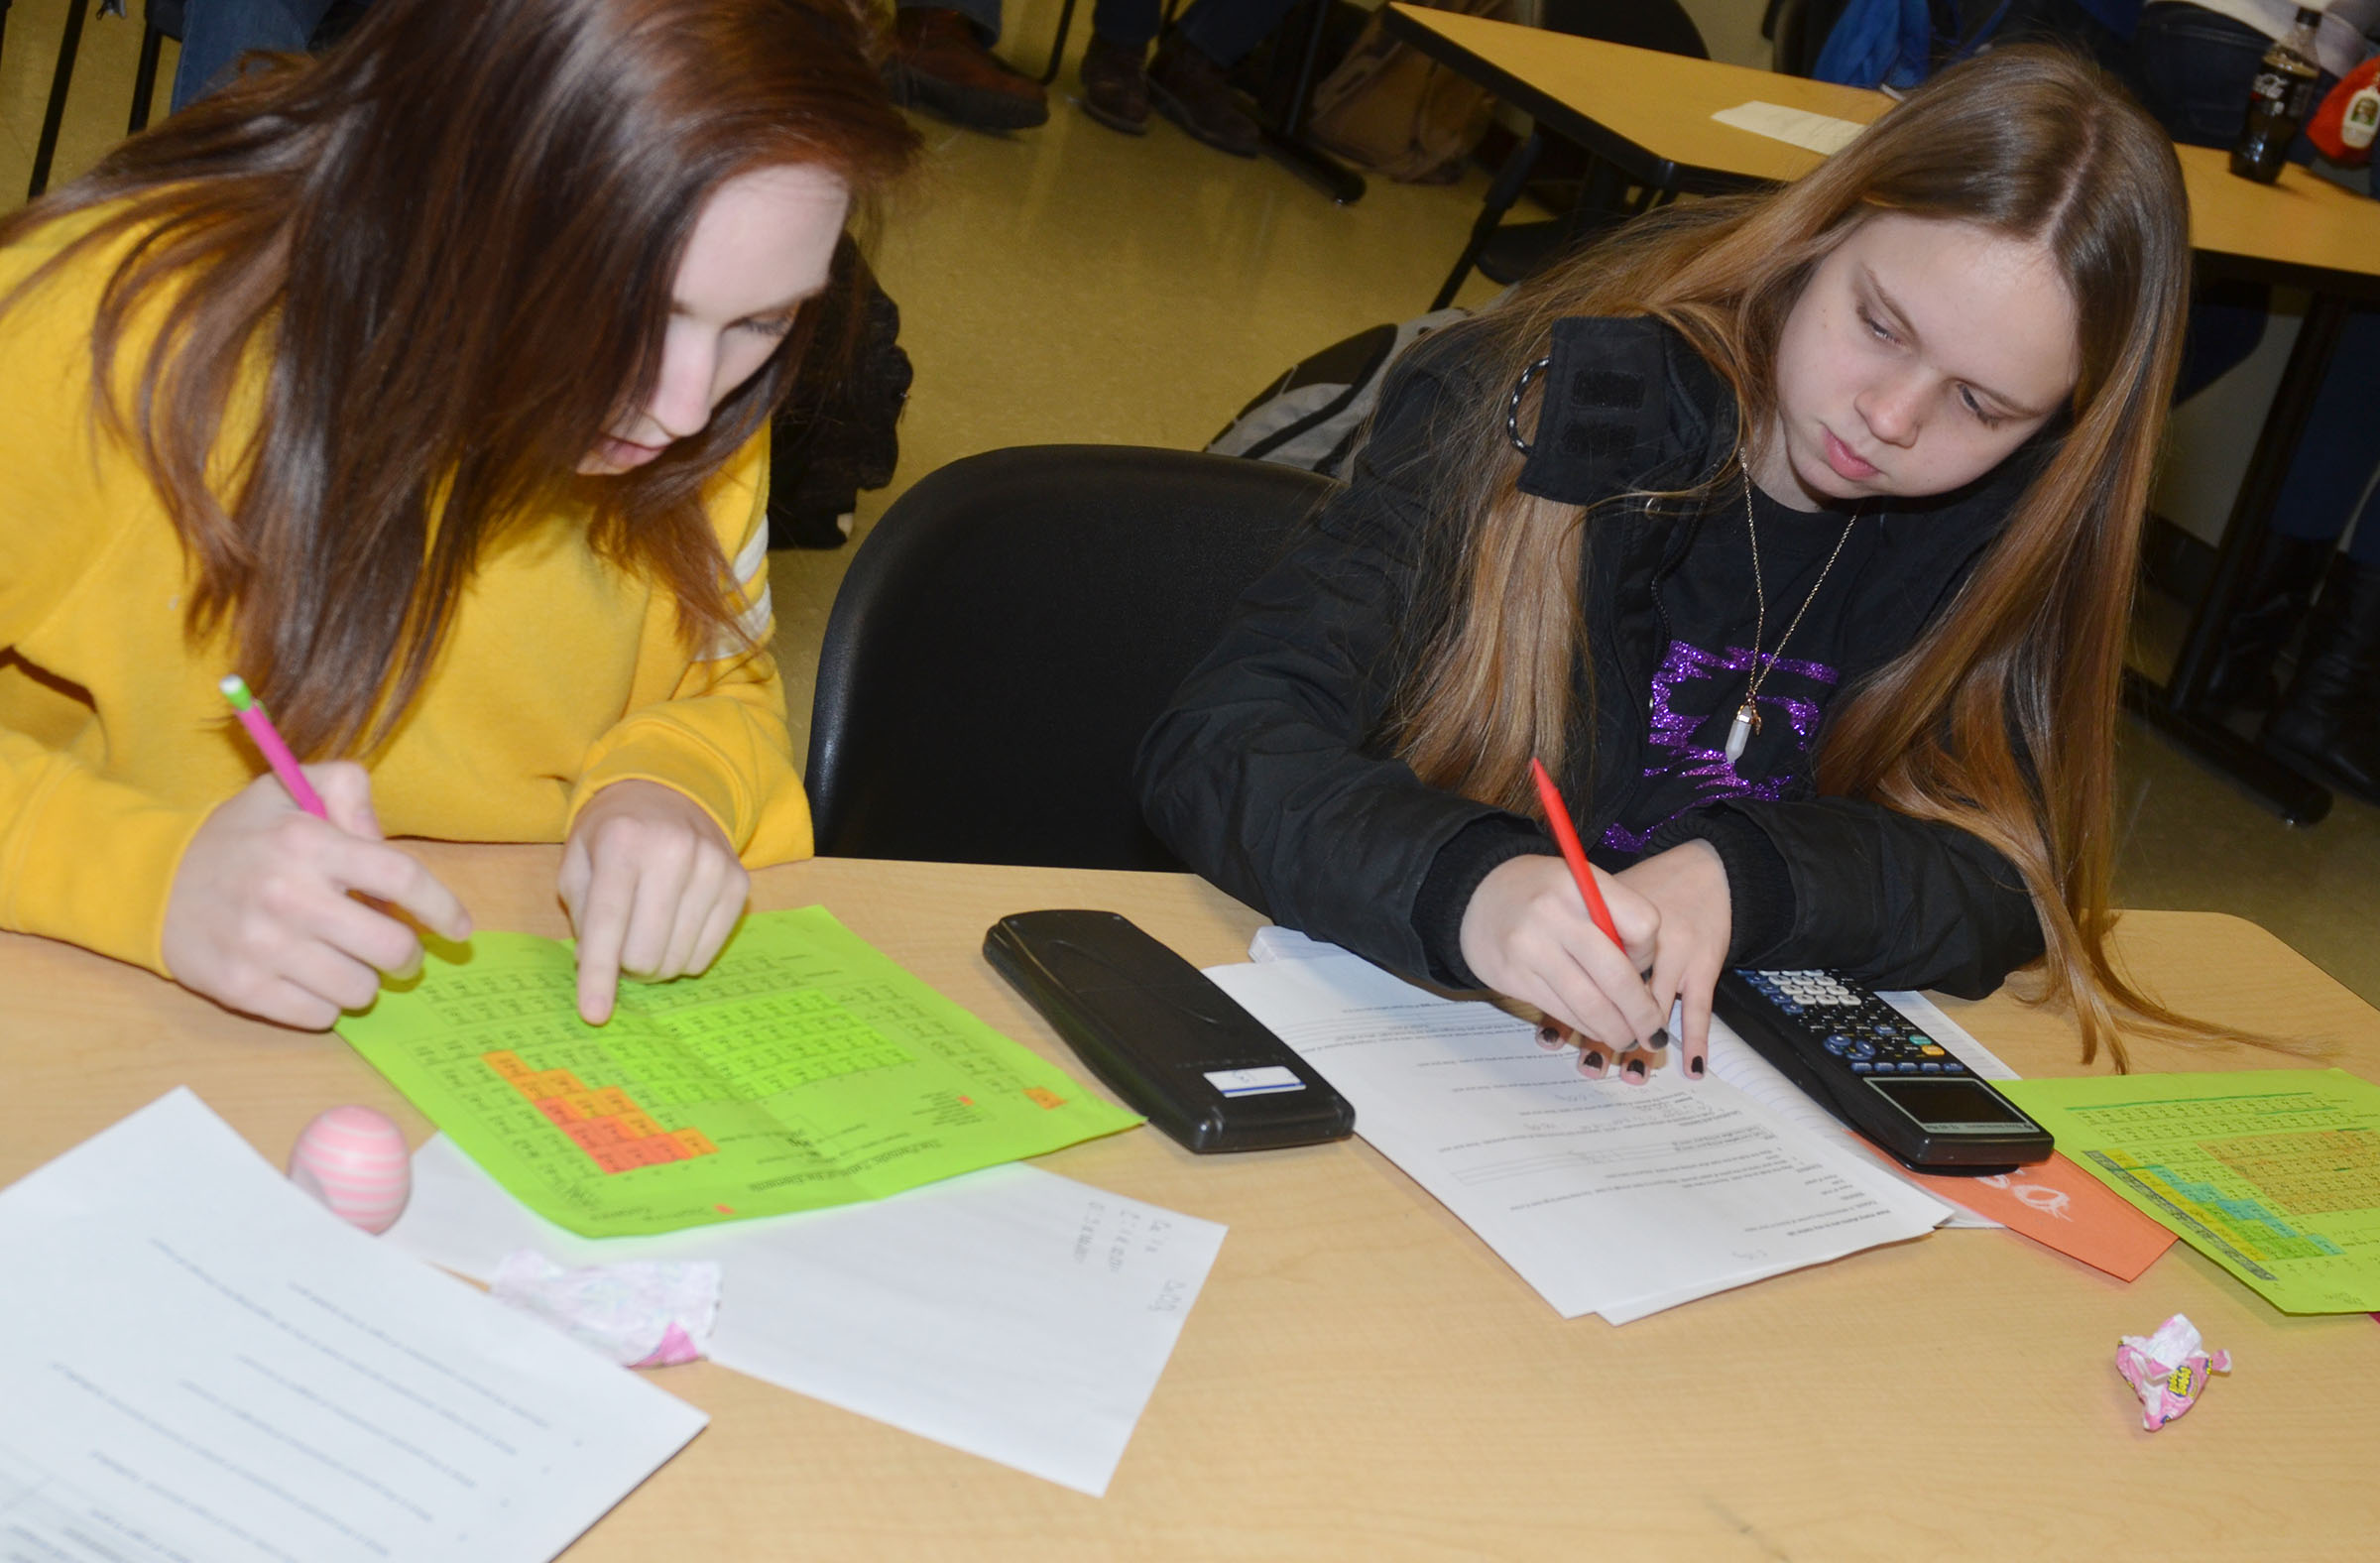 CHS juniors Jasmine Coomer, at left, and Lisa Richter work together on their lab questions.